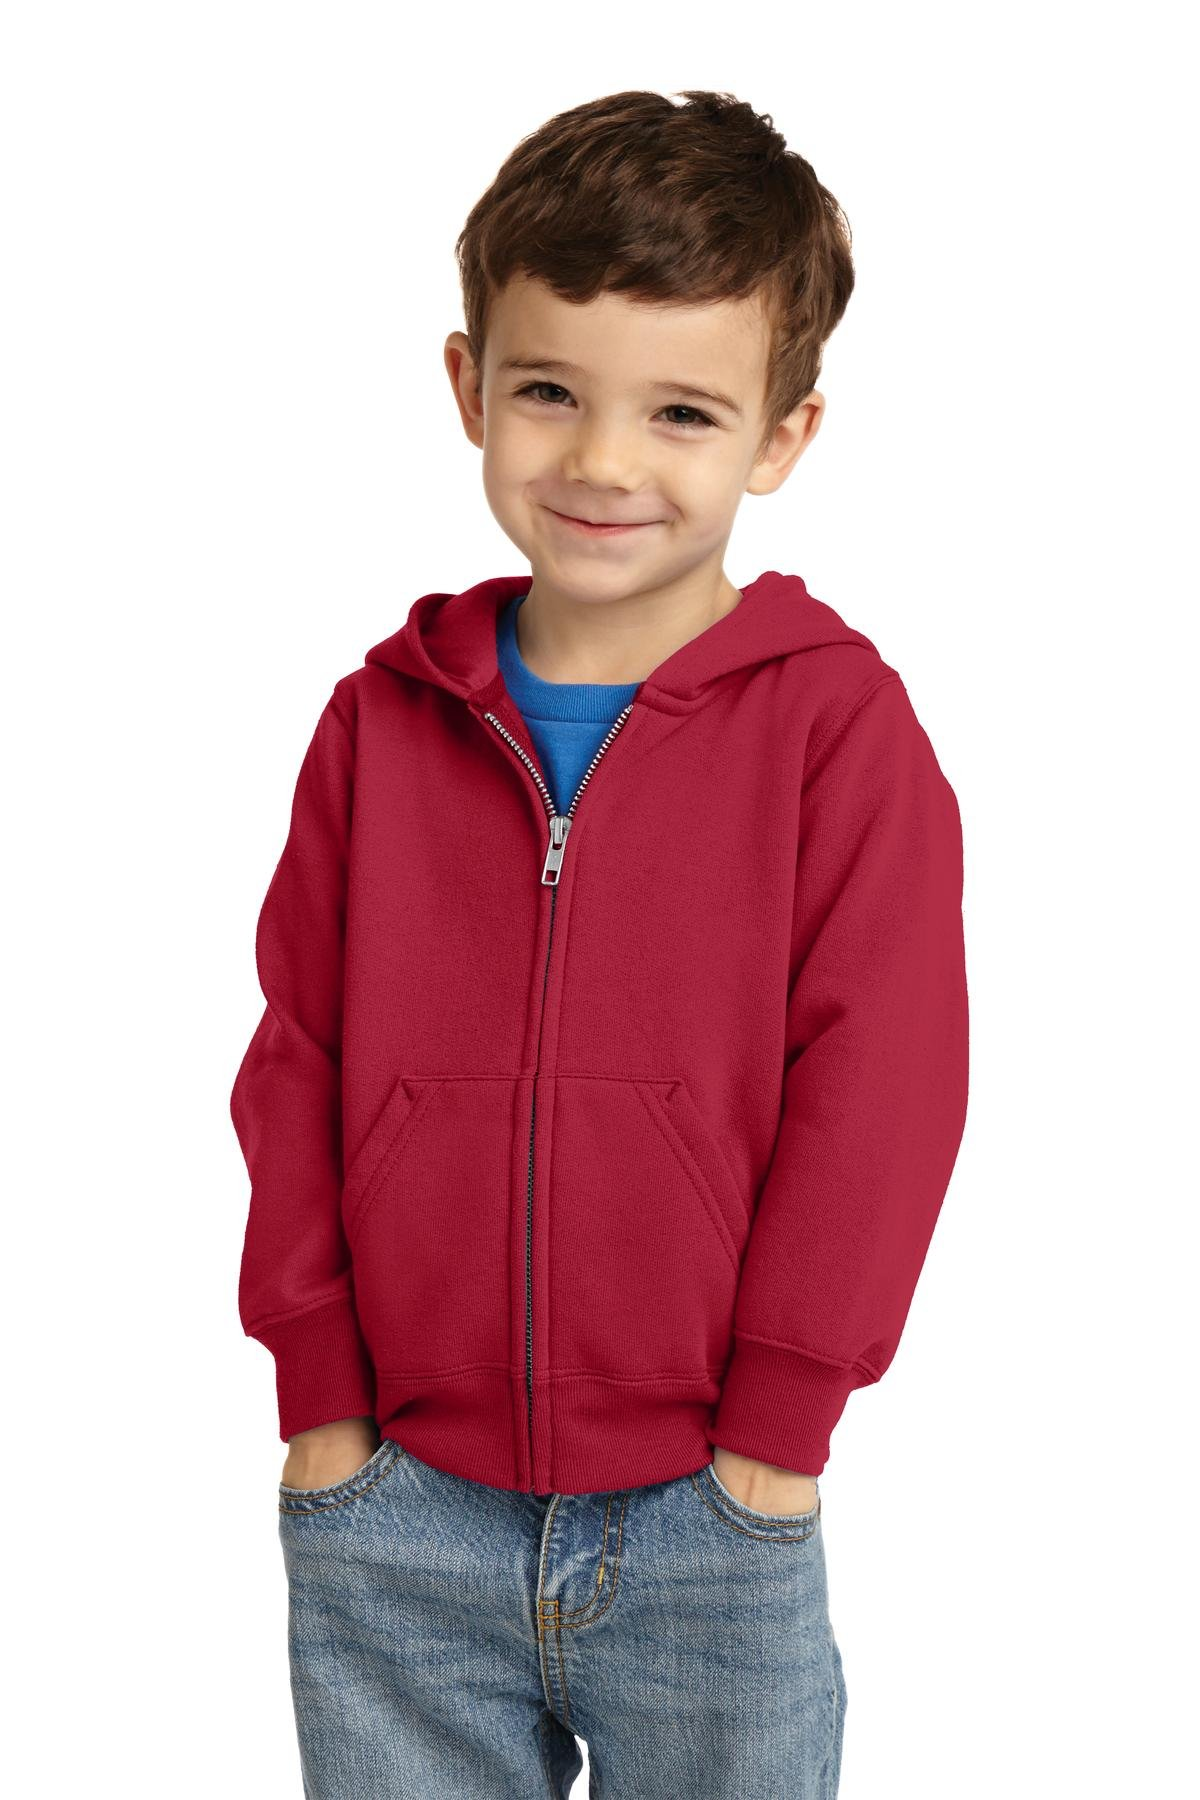 Precious Cargo unisex-baby Full Zip Hooded Sweatshirt 3T Red by Precious Cargo